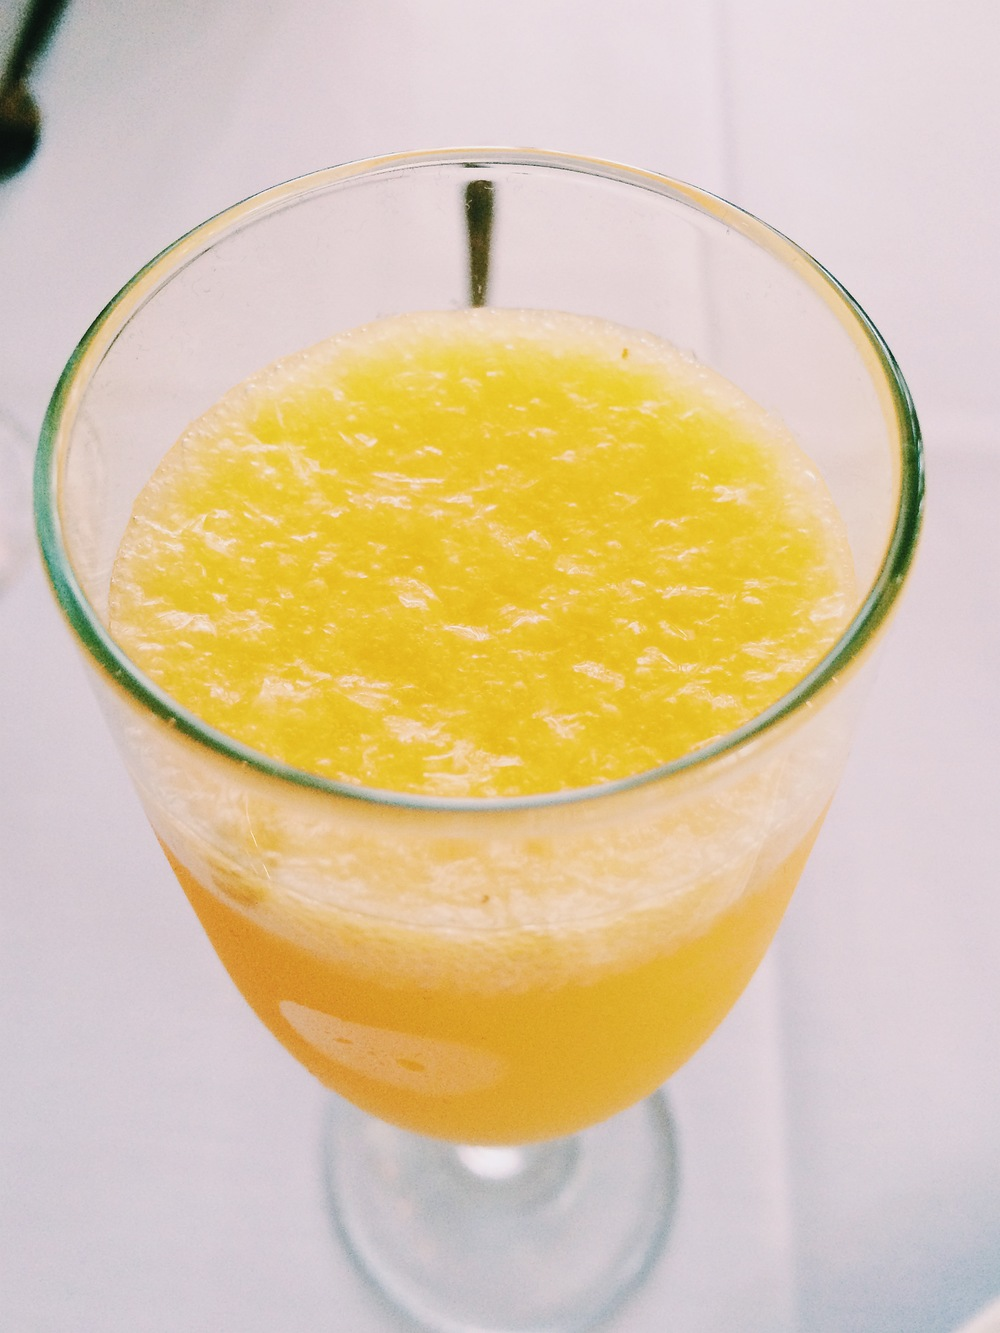 More mimosas please! We dig the fancy pants, pulpy brunch staple at Queenie's brunch which comes complimentary.